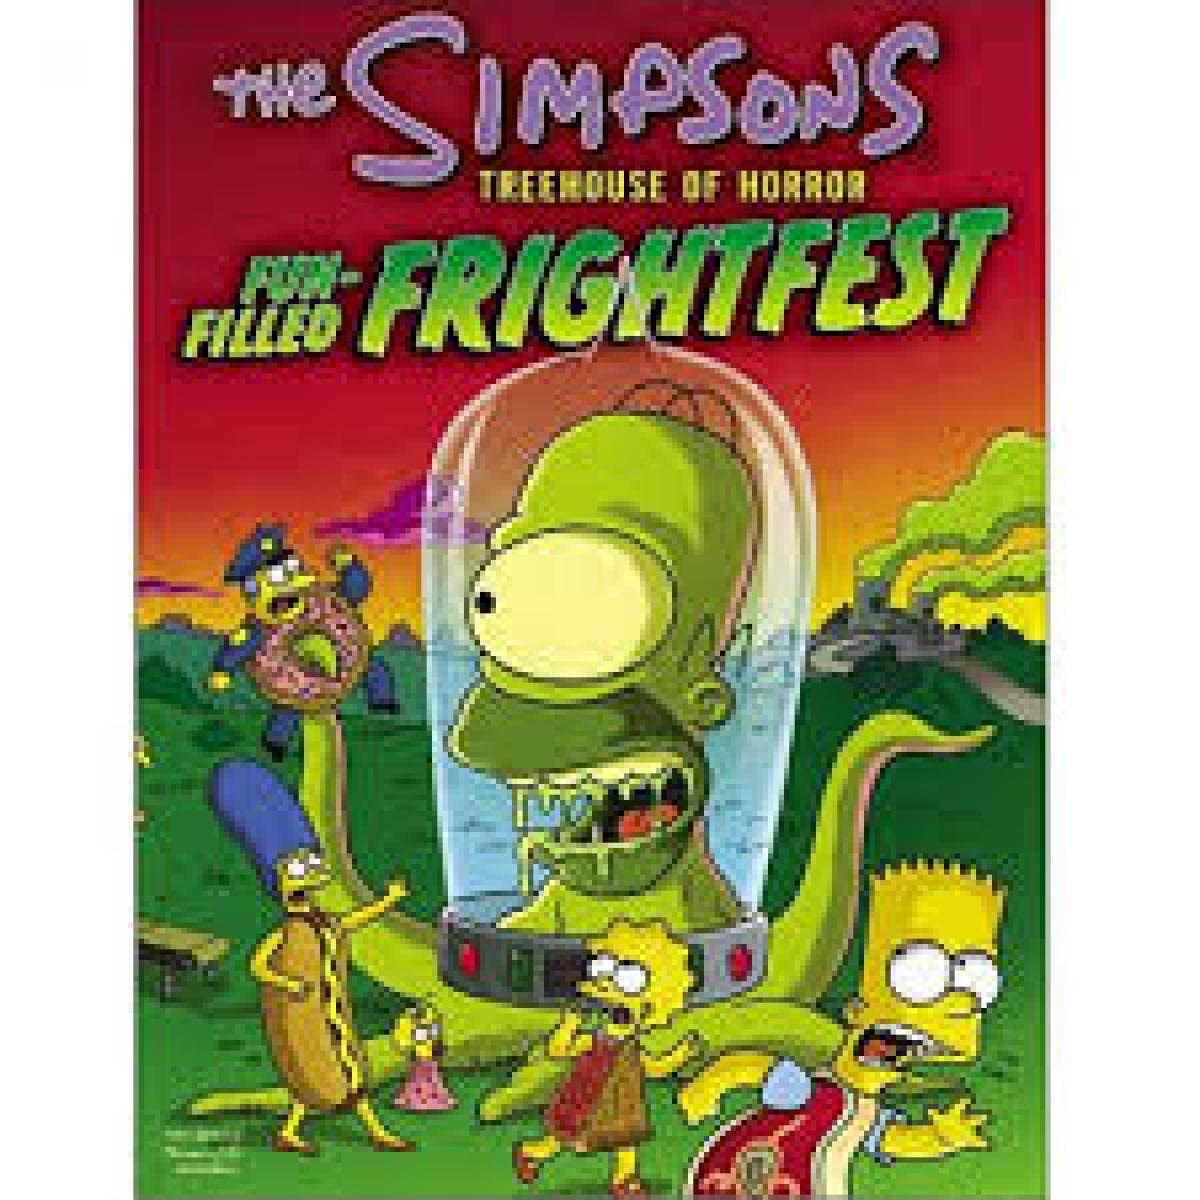 The Simpsons: Treehouse of Horror Fun-Filled Frightfest